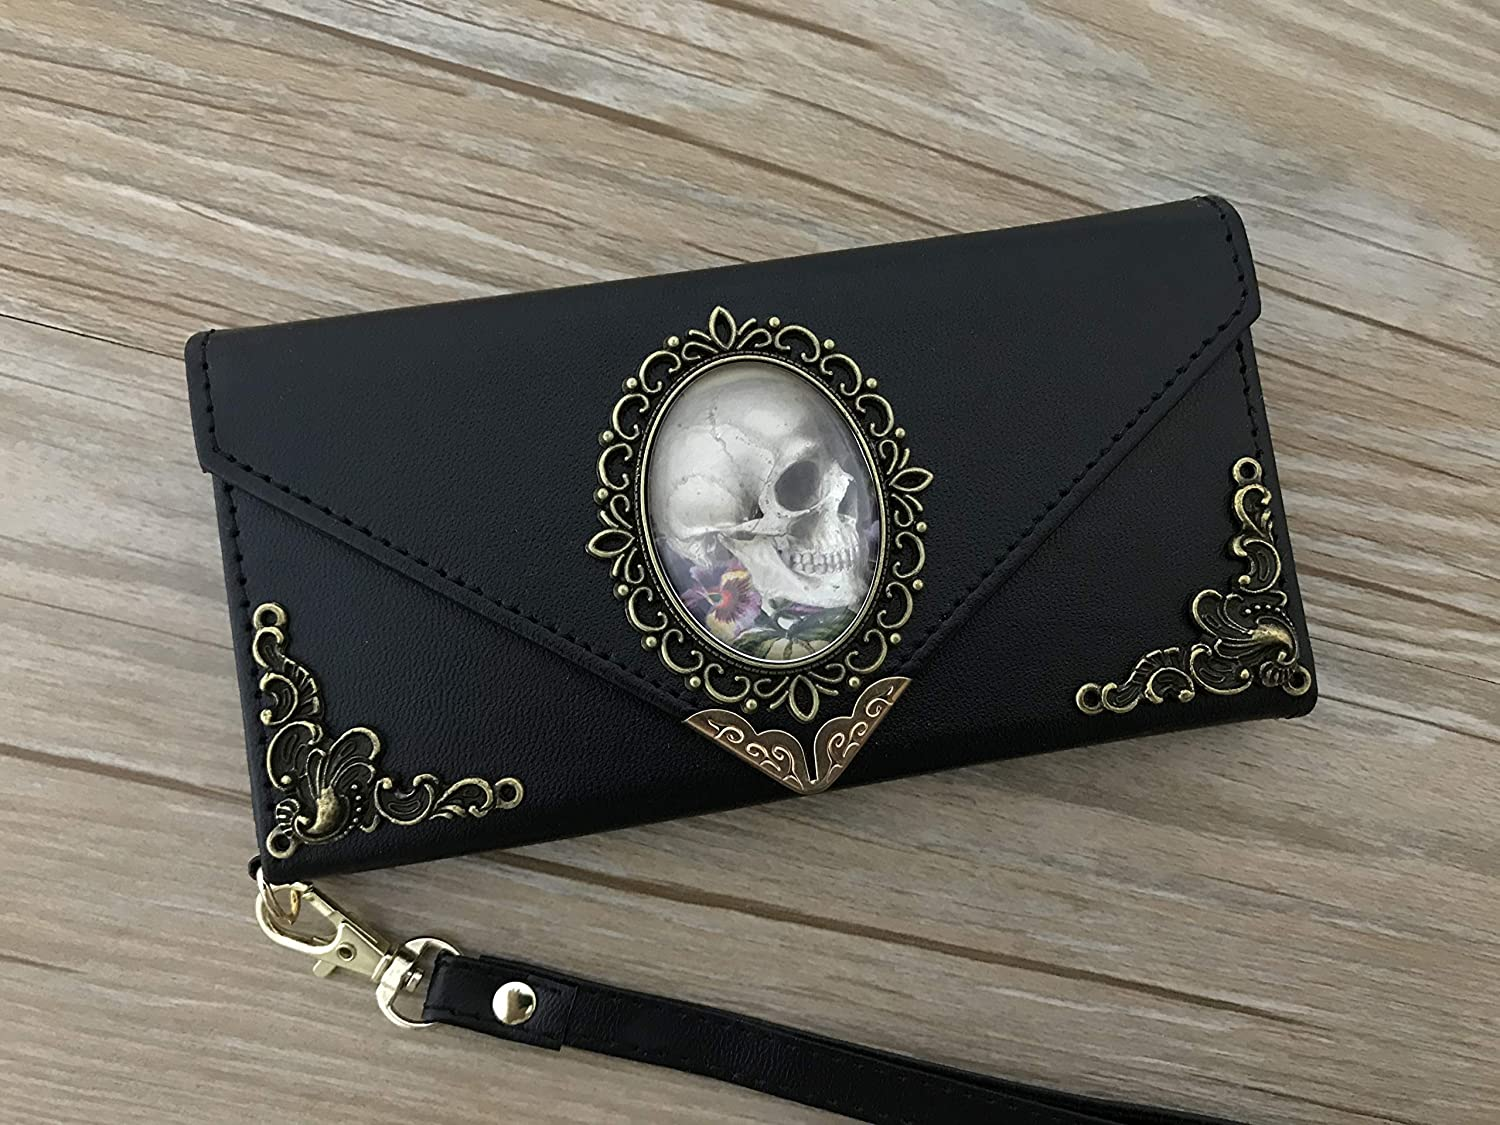 Antique goth skull envelope leather wallet handmade phone wallet case cover for X XS XR XS Max iPhone 8 7 6 6s Plus Samsung Galaxy S7 Edge S8 S9 Plus Note8 Note9 DC019